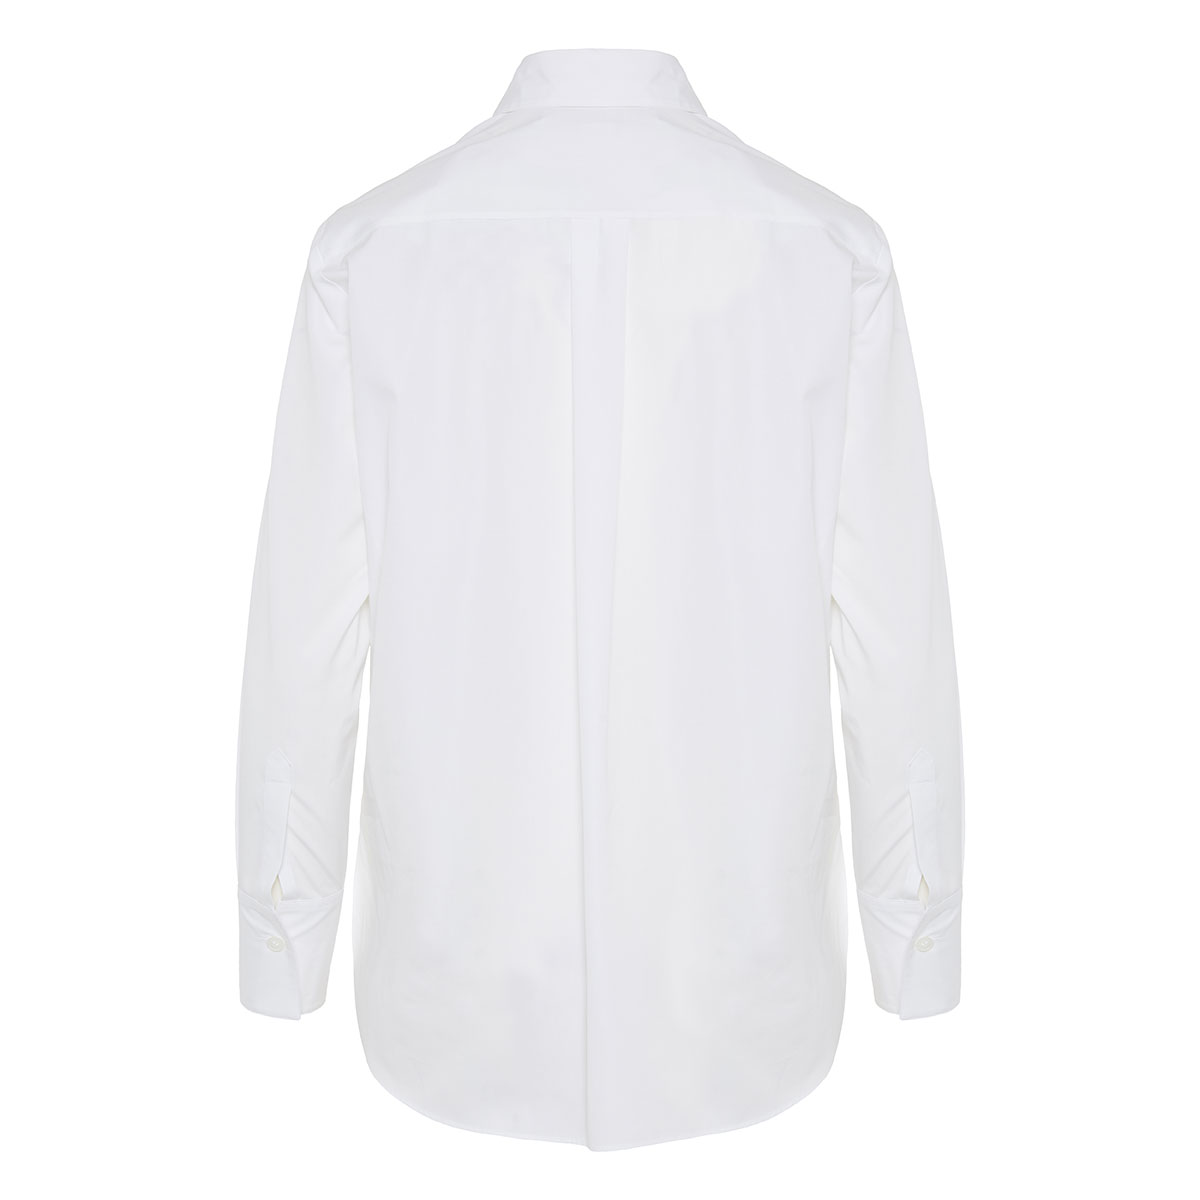 Organic cotton shirt with embroidered detail